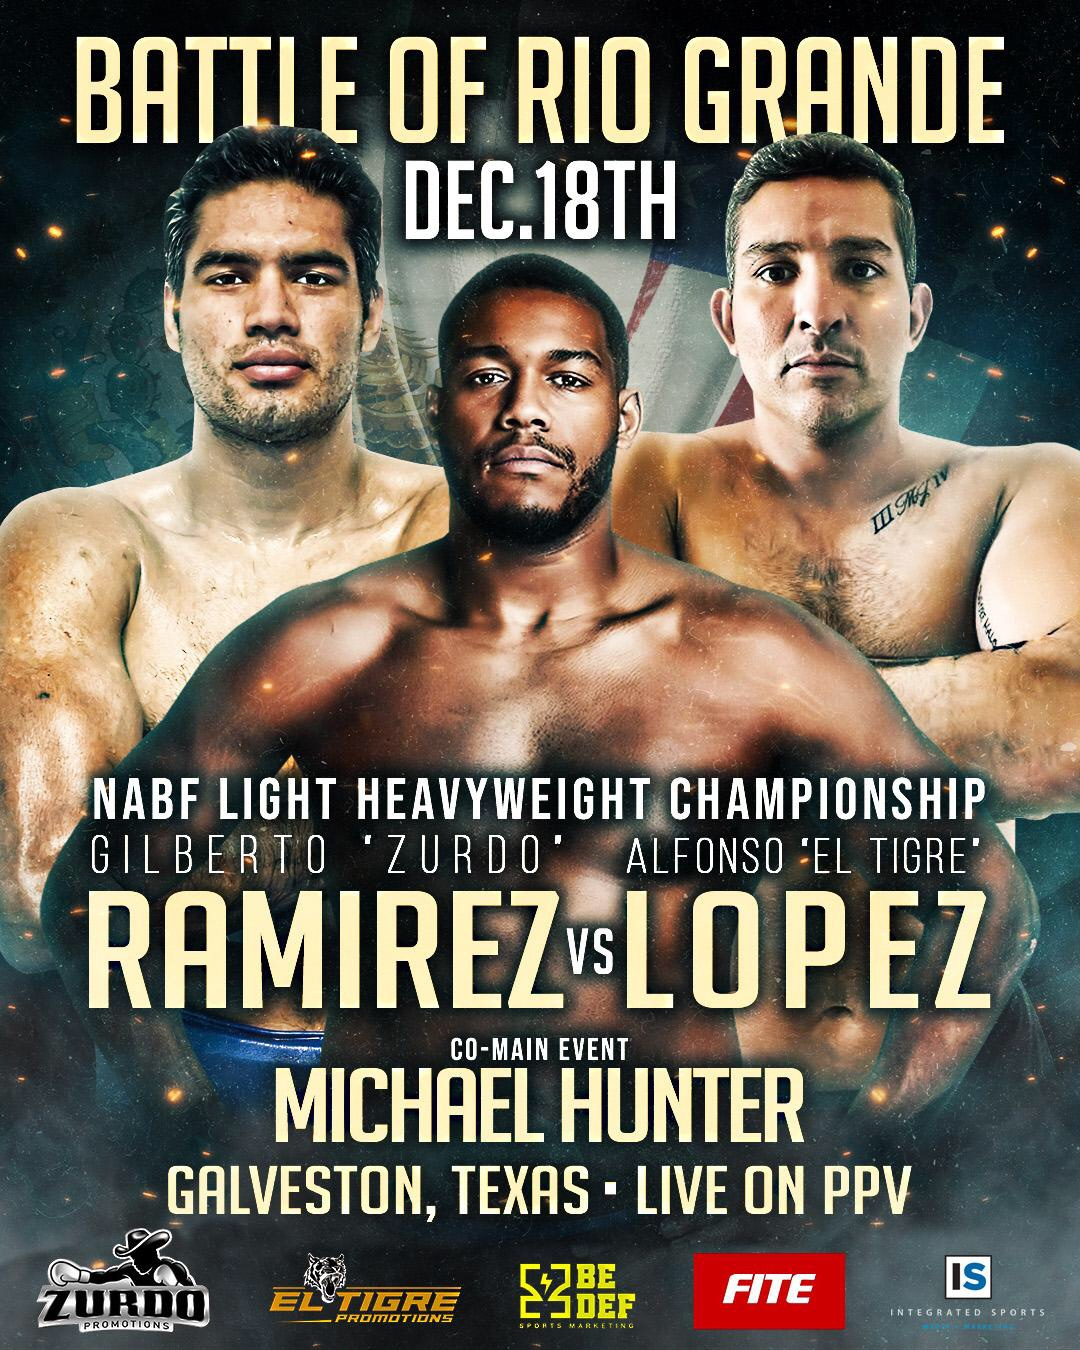 Battle of Rio Grande - Lopez vs Ramirez + Hunter | boxen247.com